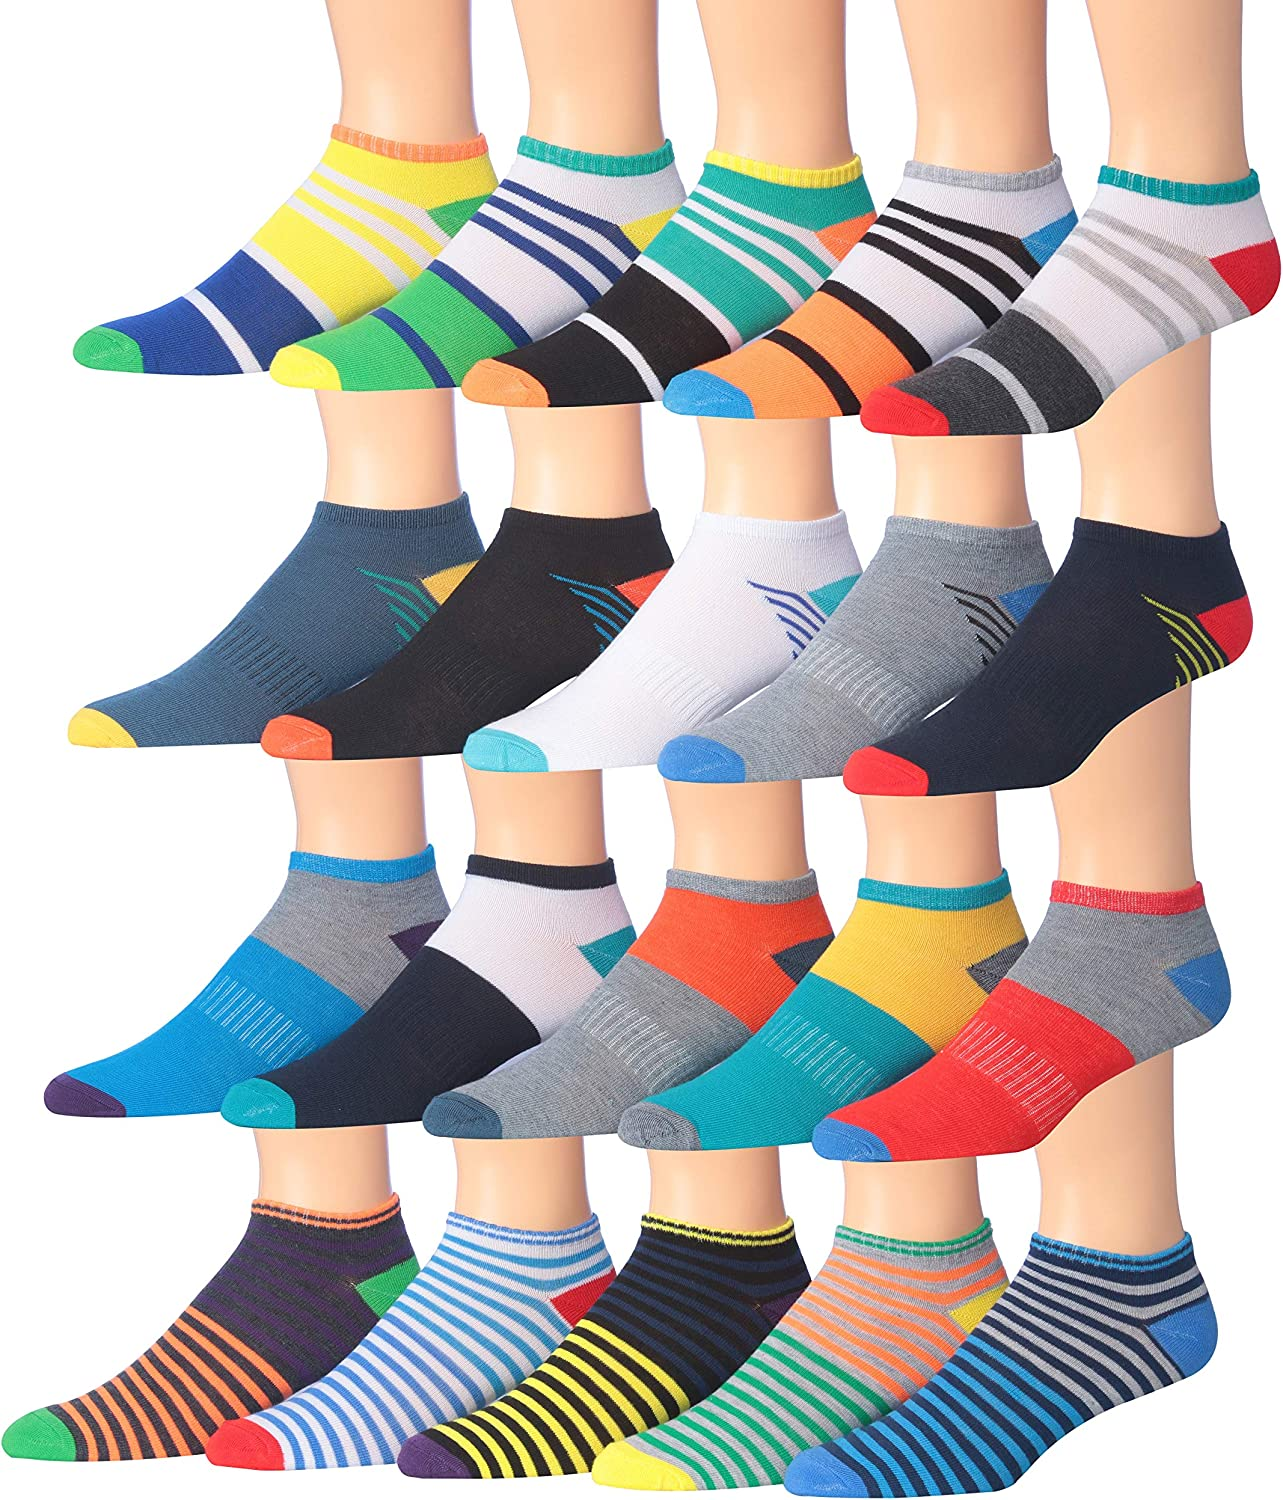 James FialloMen's 20 Pairs Classy Extra Lightweight Colorful Patterned Low Cut/No Show Socks